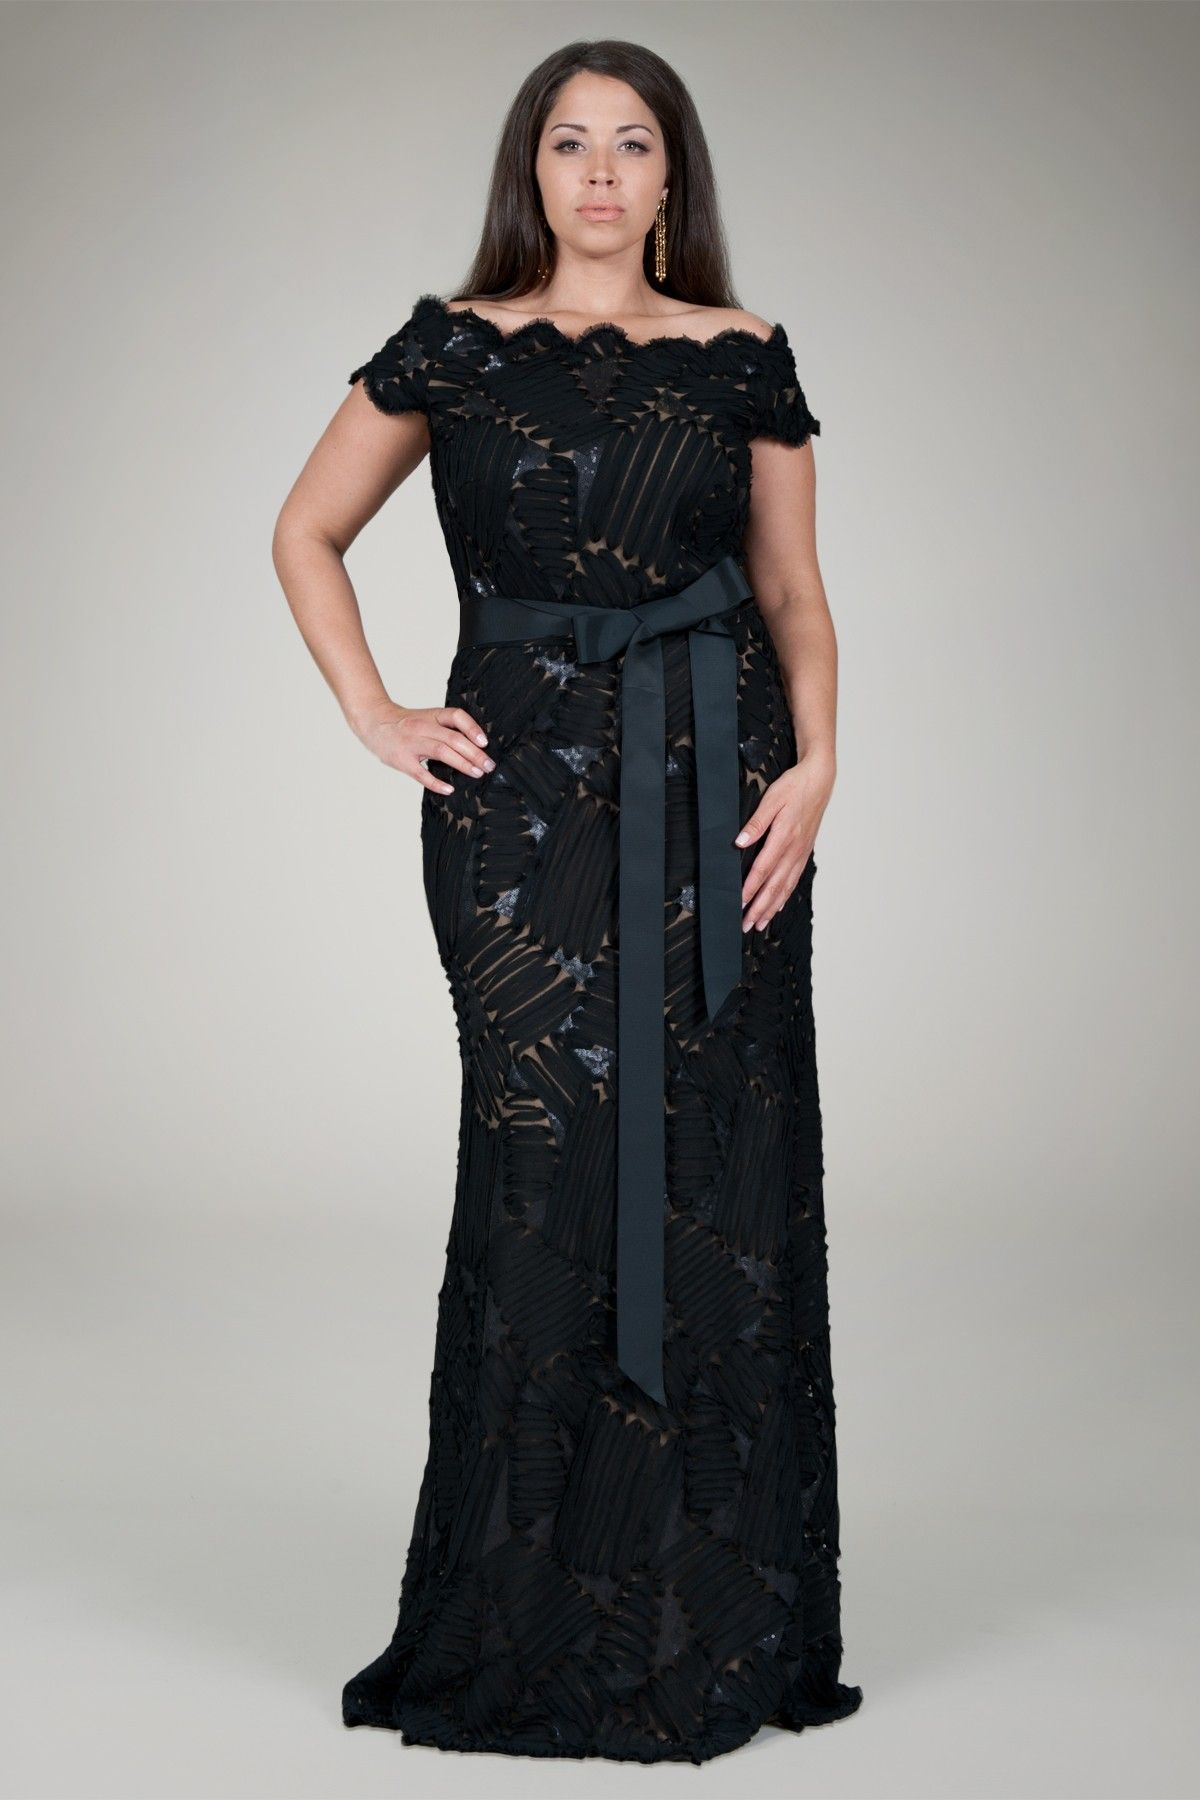 Embroidered Mini Paillette Gown in Black Nude Plus Size Evening